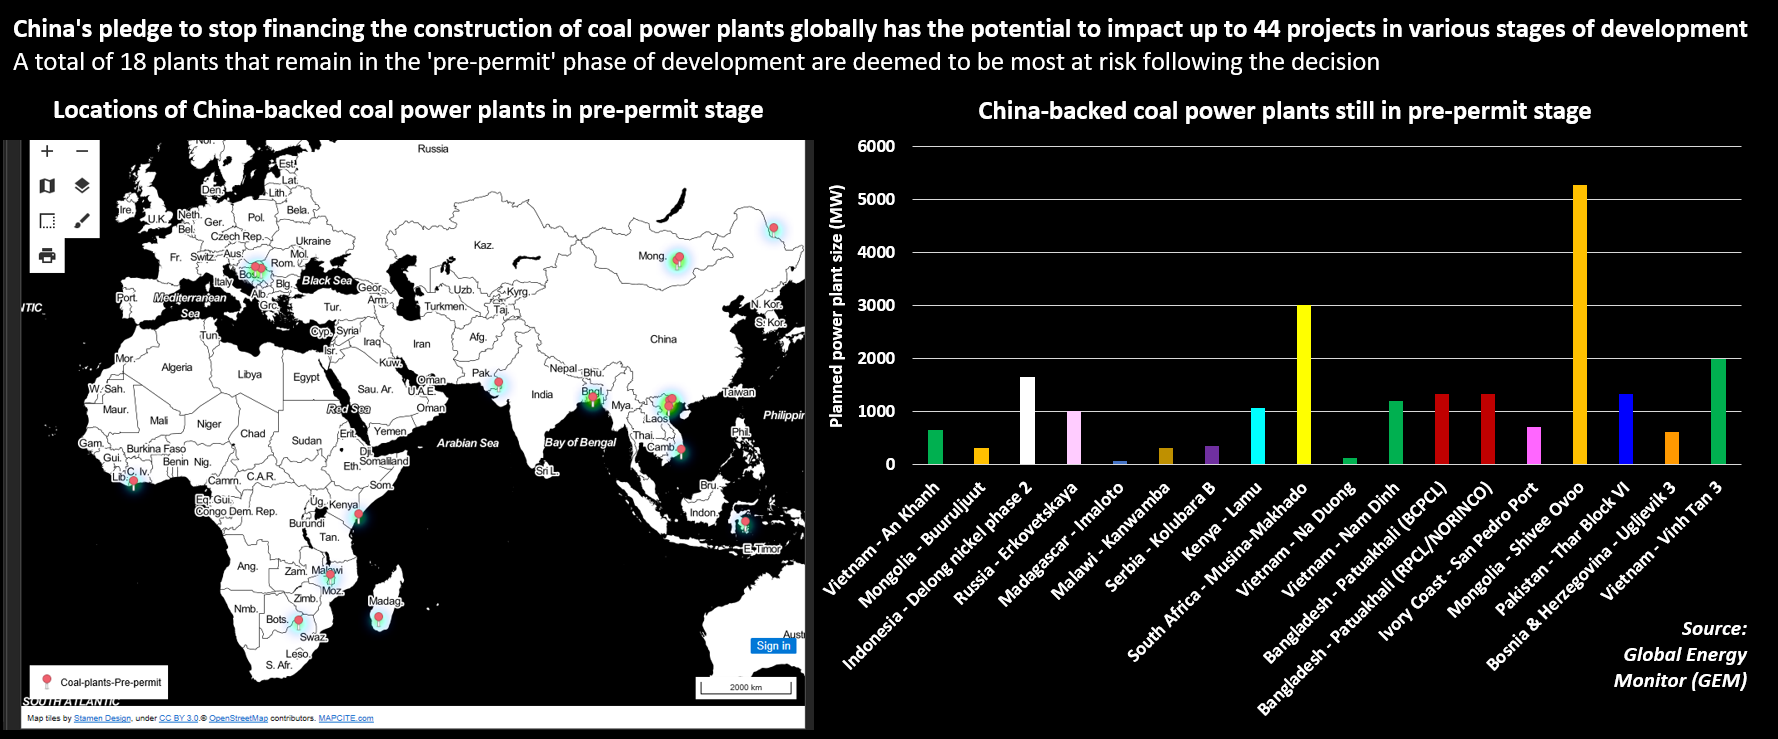 China-backed coal power plants now at risk